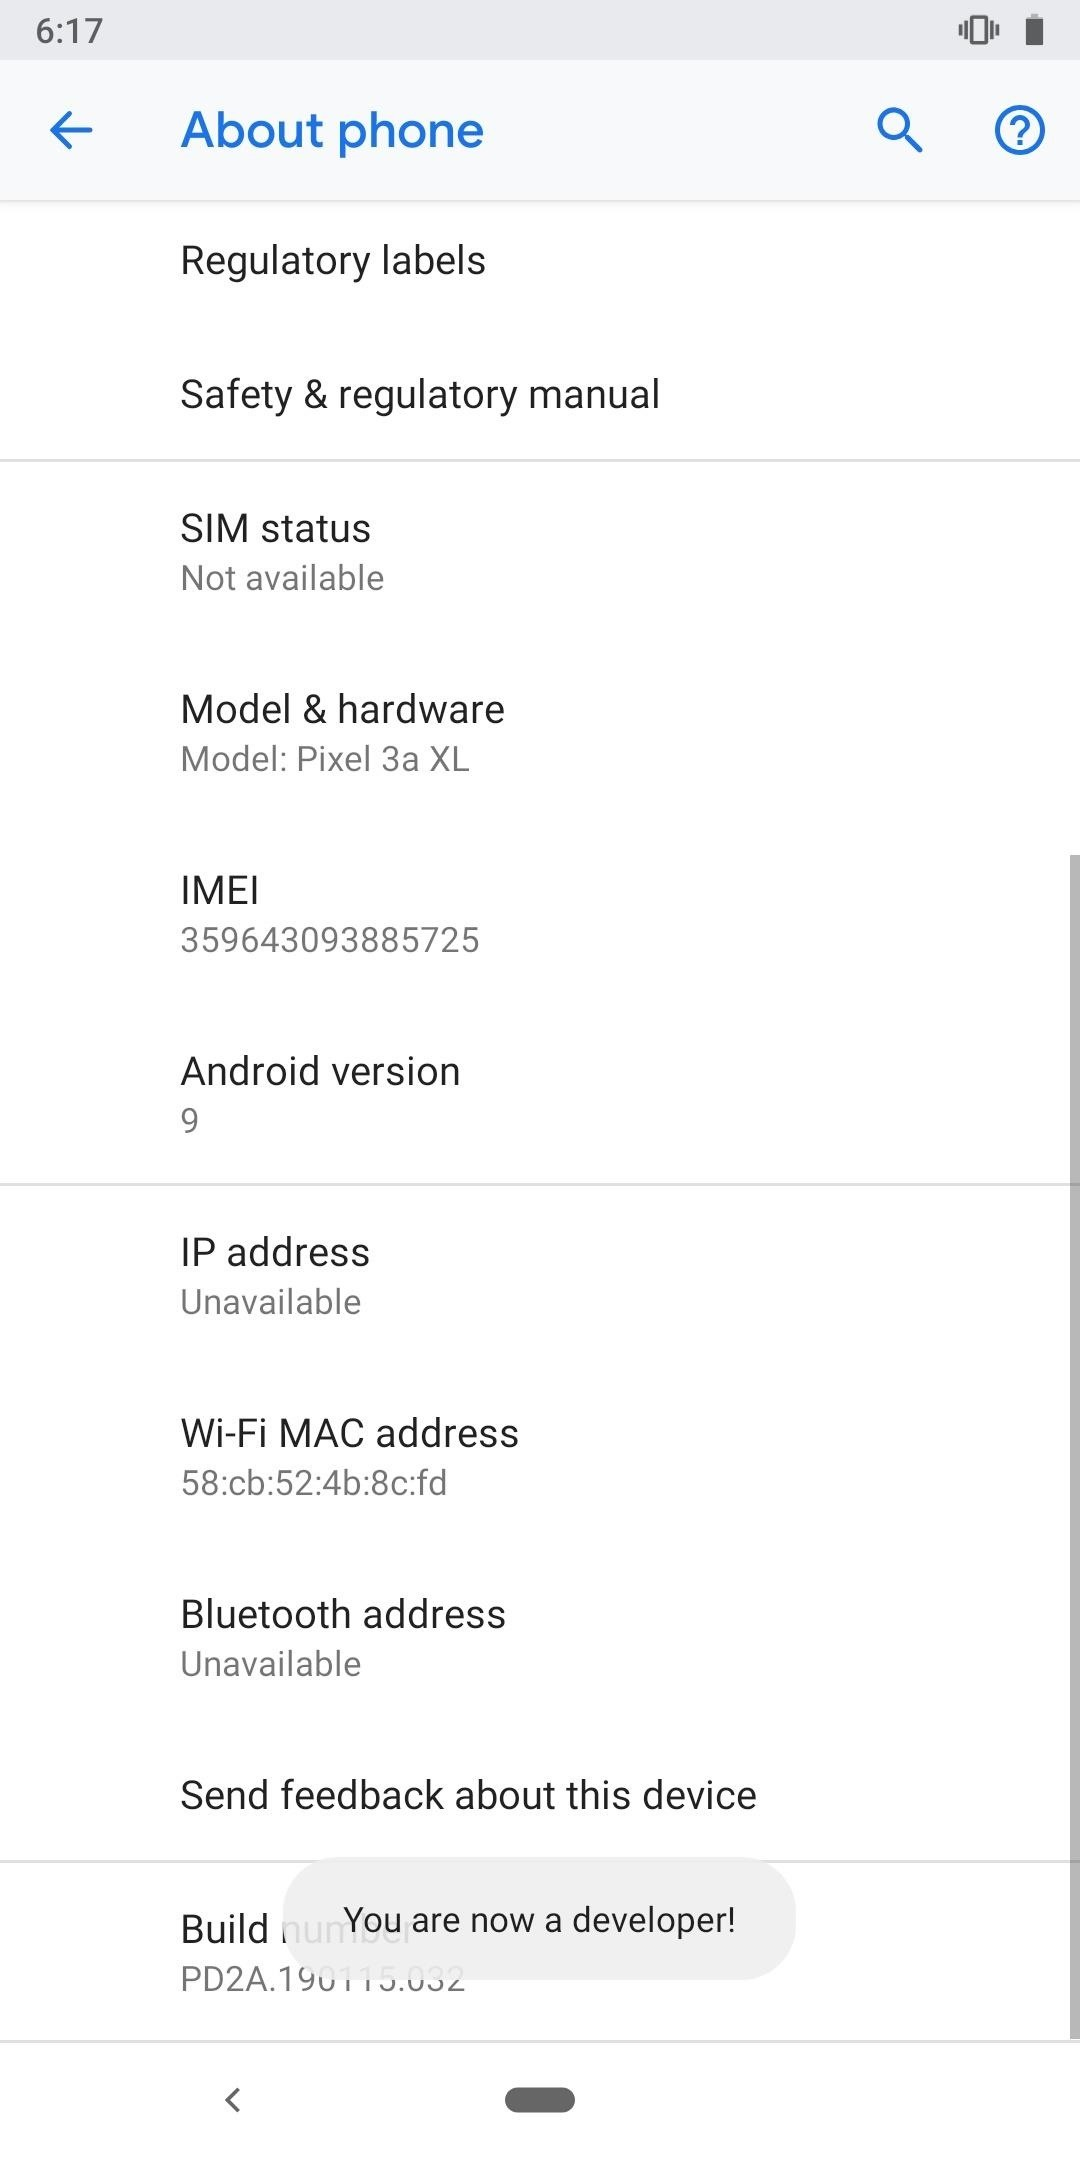 How to Unlock the Bootloader on Your Pixel 3a